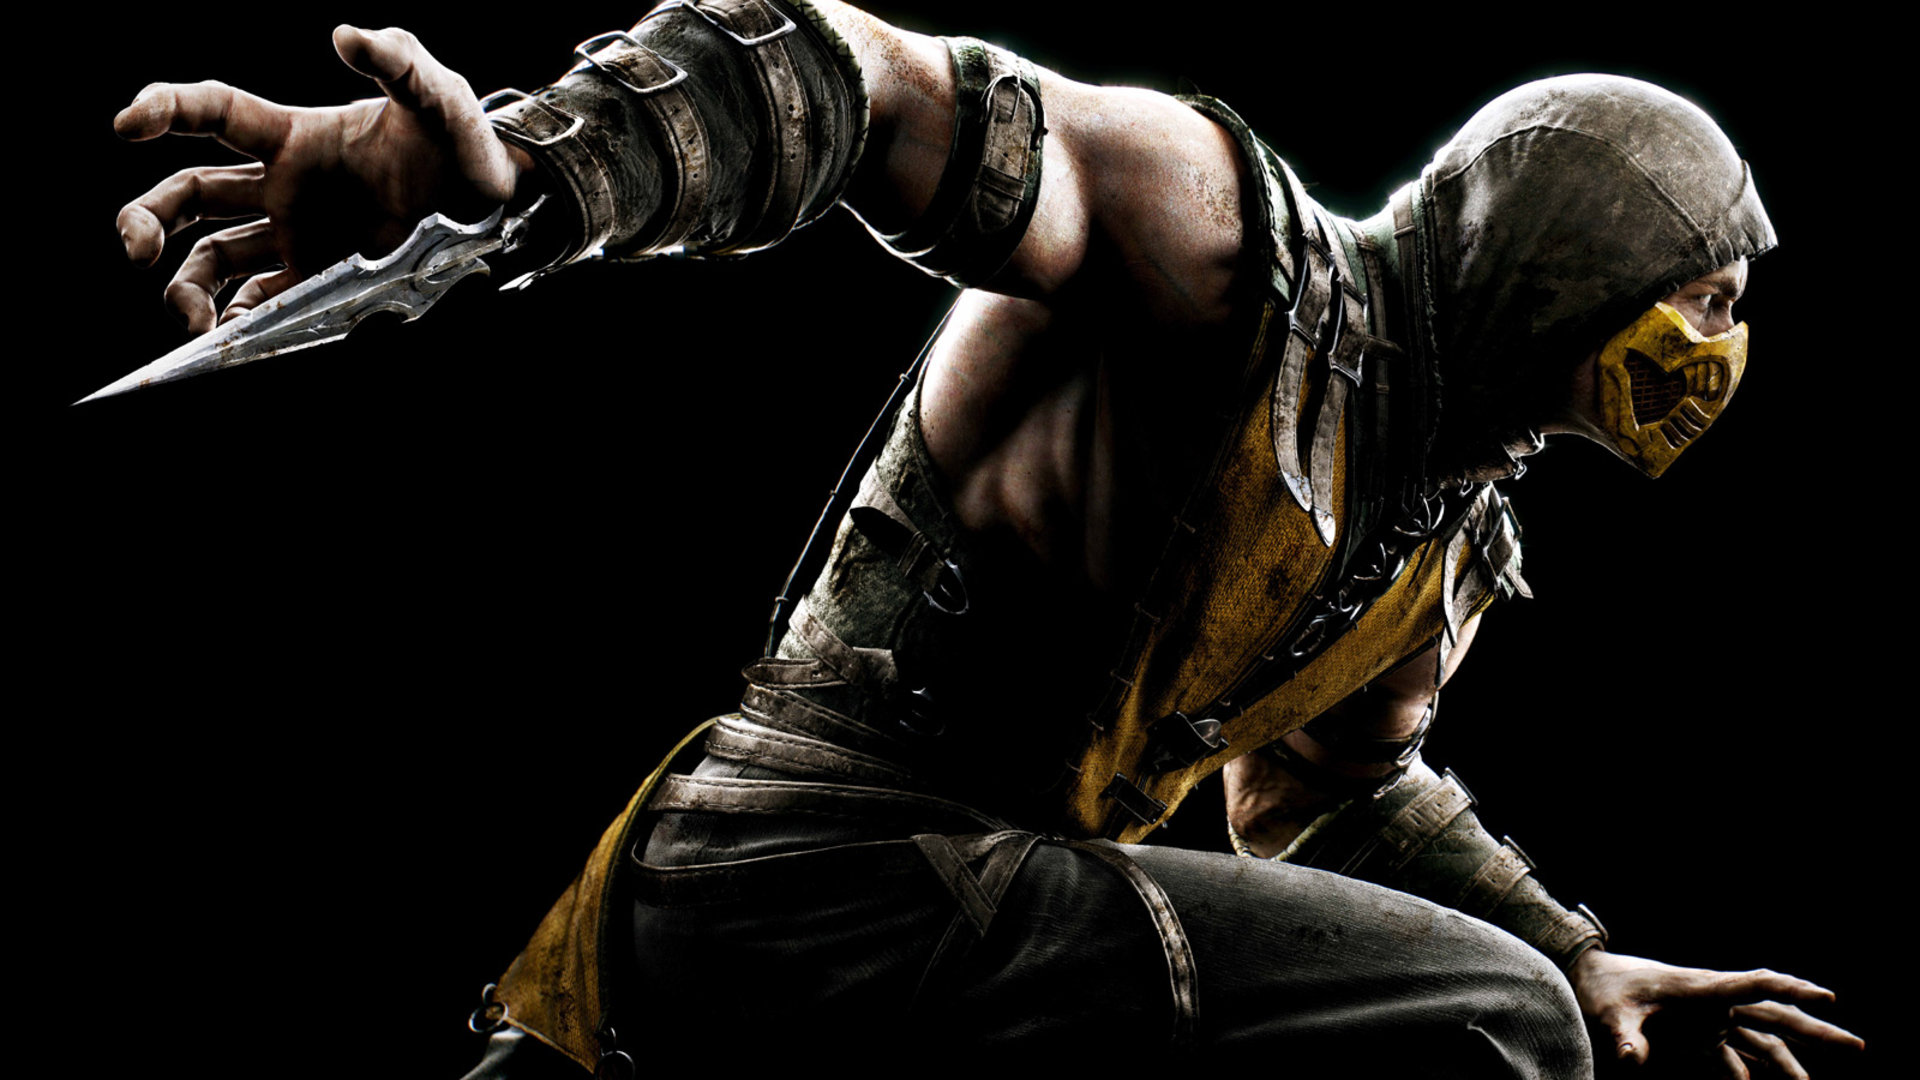 scorpion spear throw mortal kombat